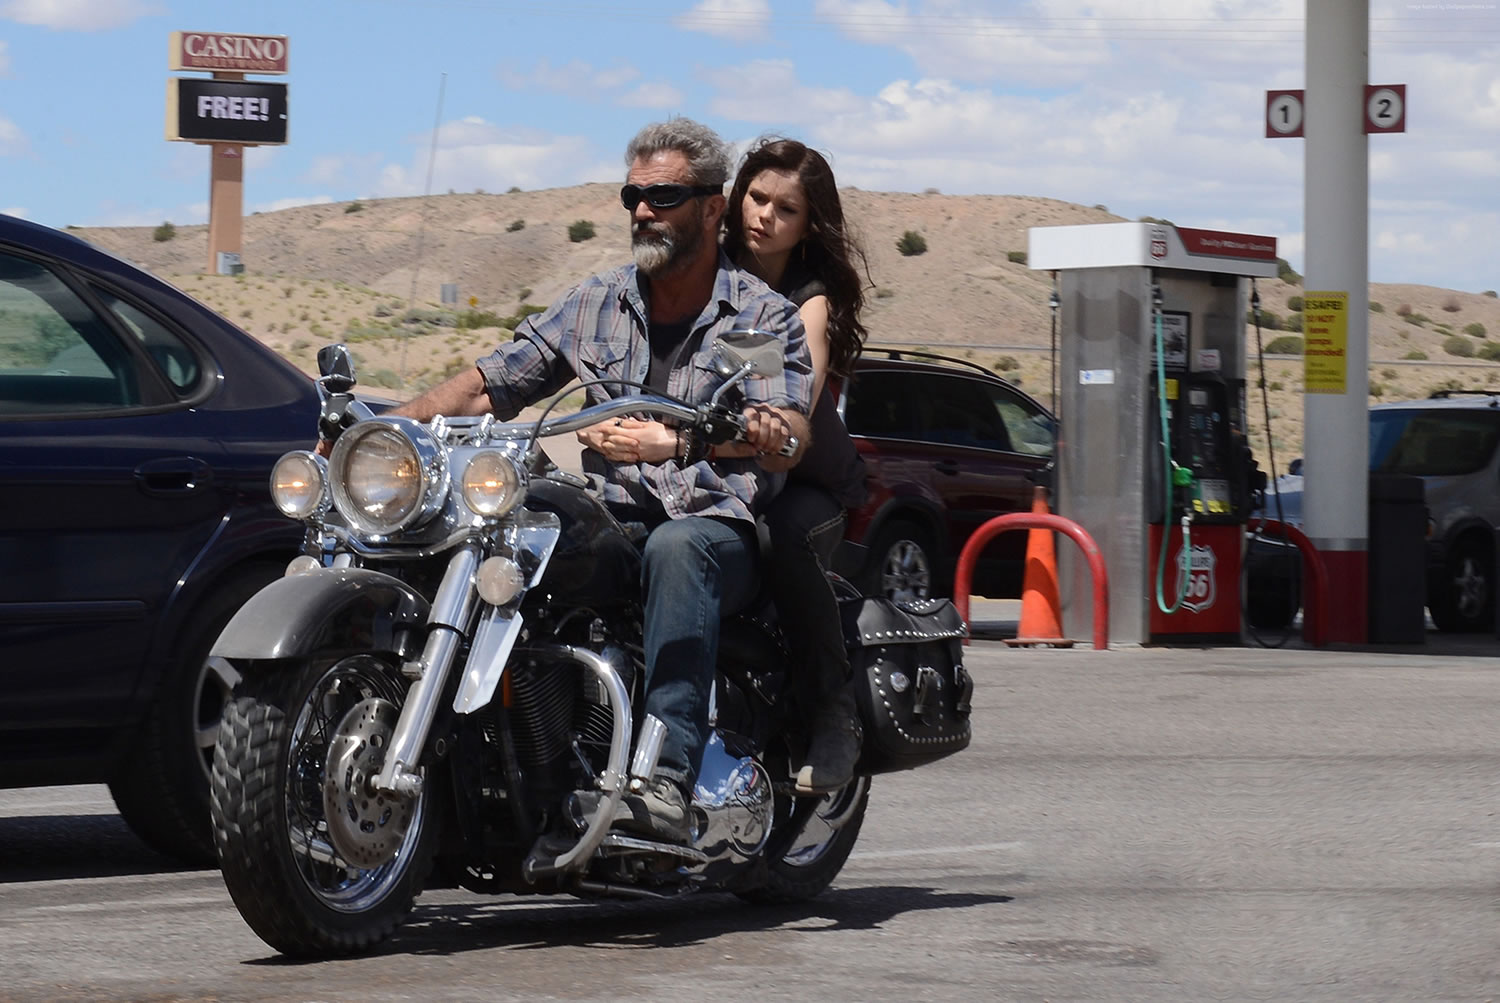 mel gilbson on bike, blood father